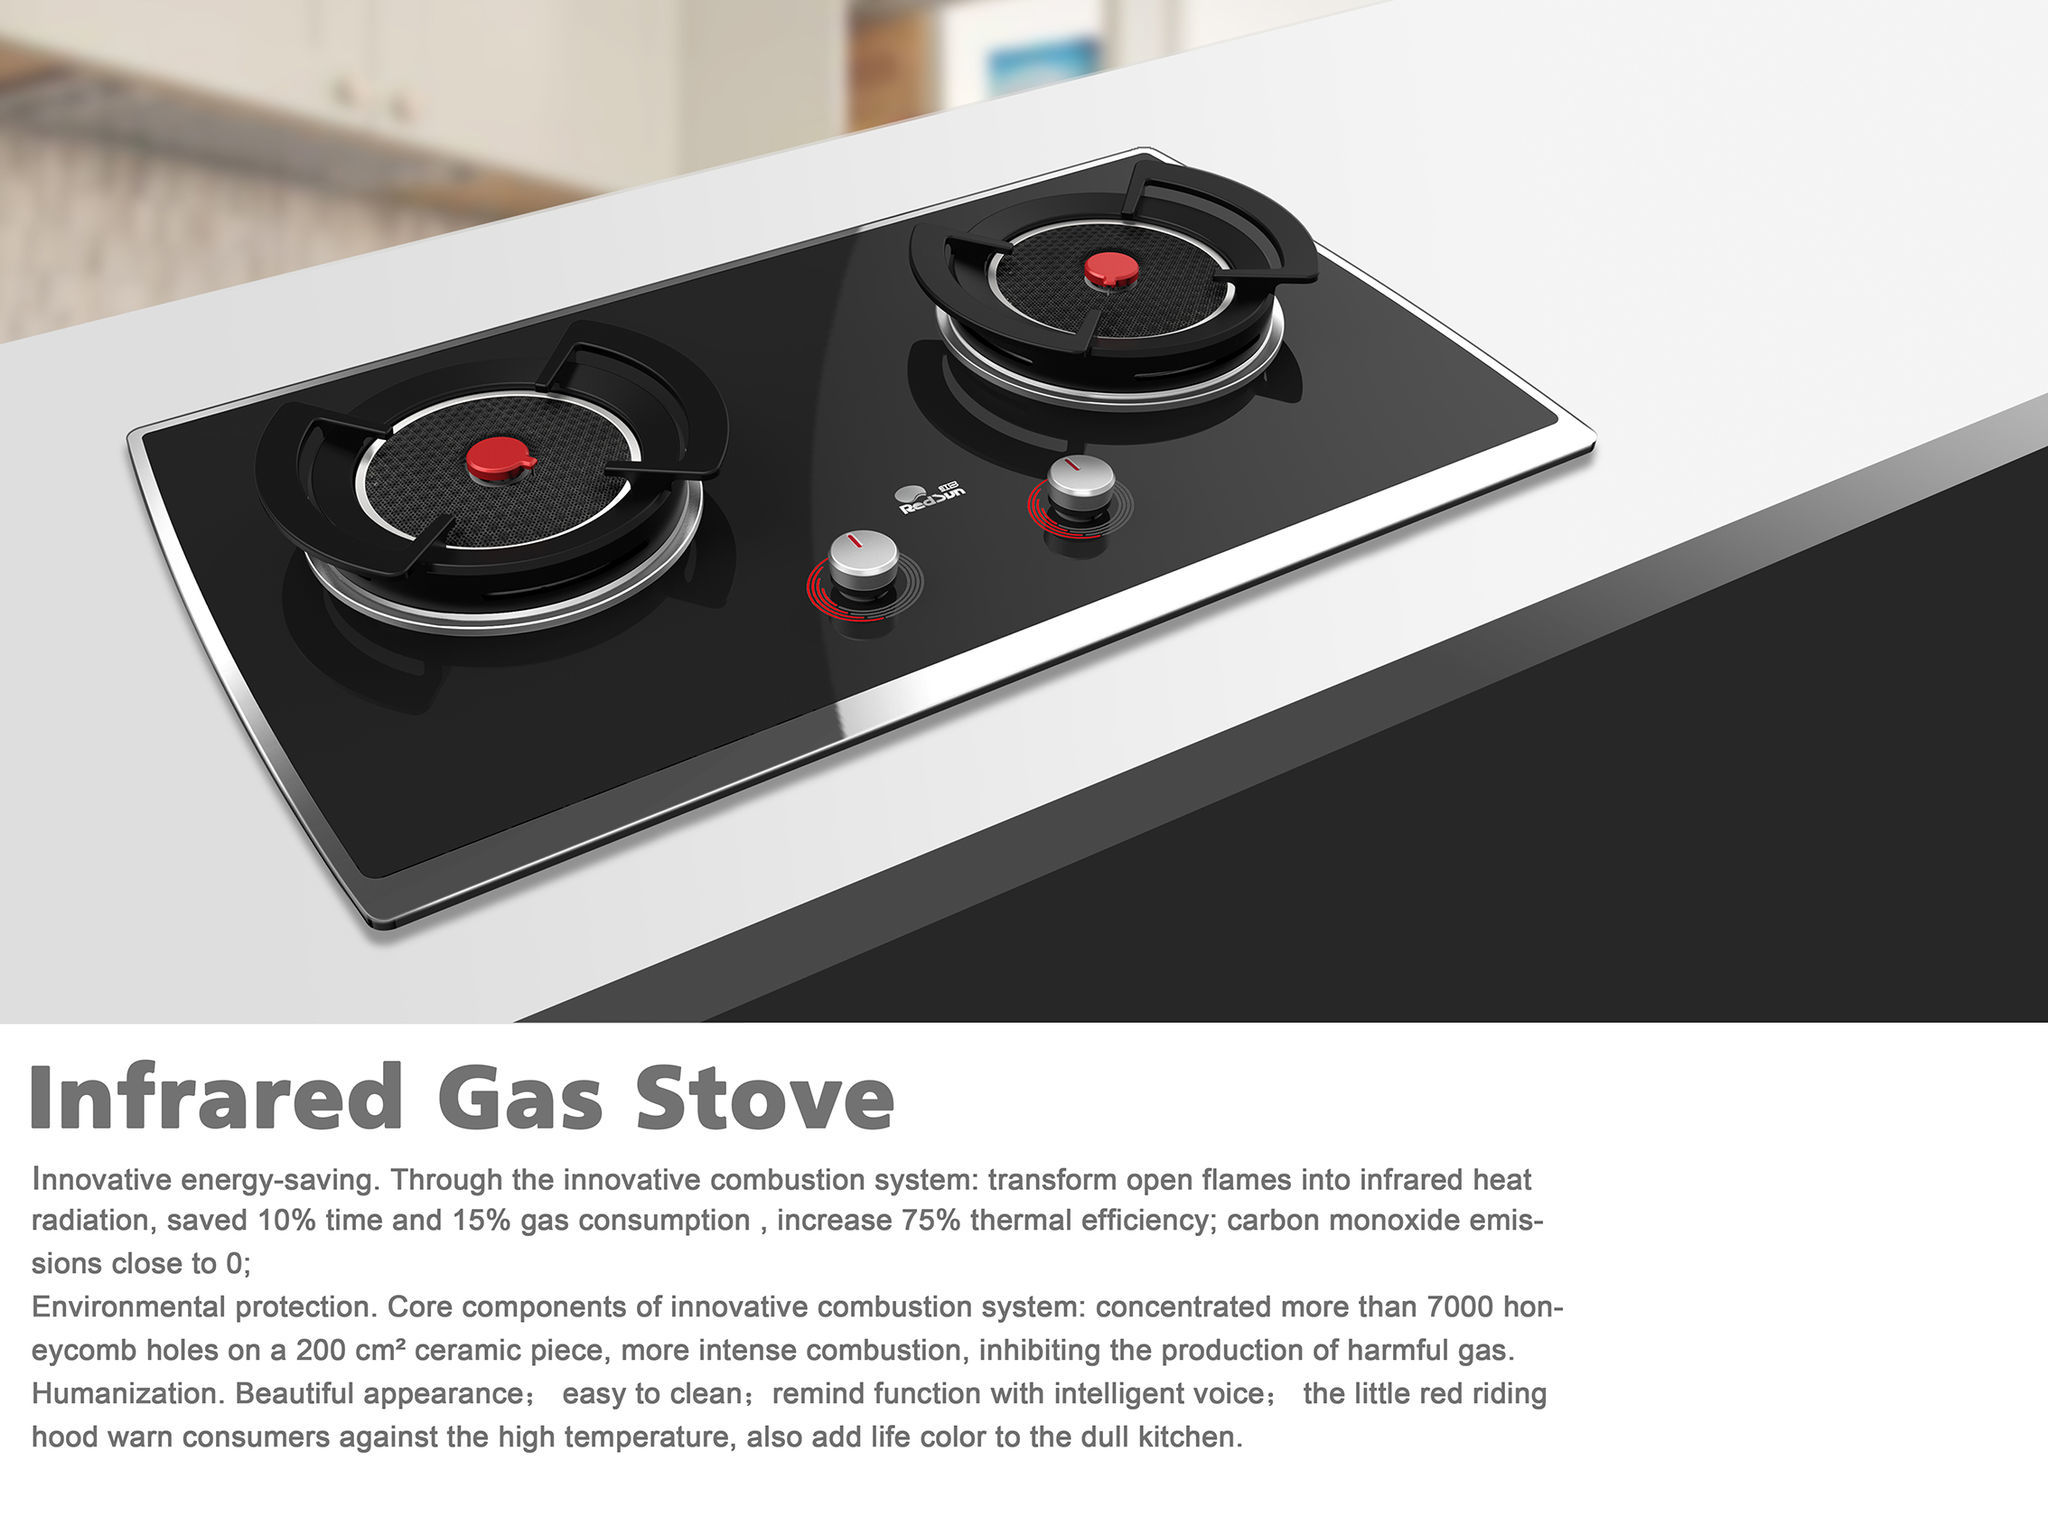 Infrared Gas Stove If World Design Guide